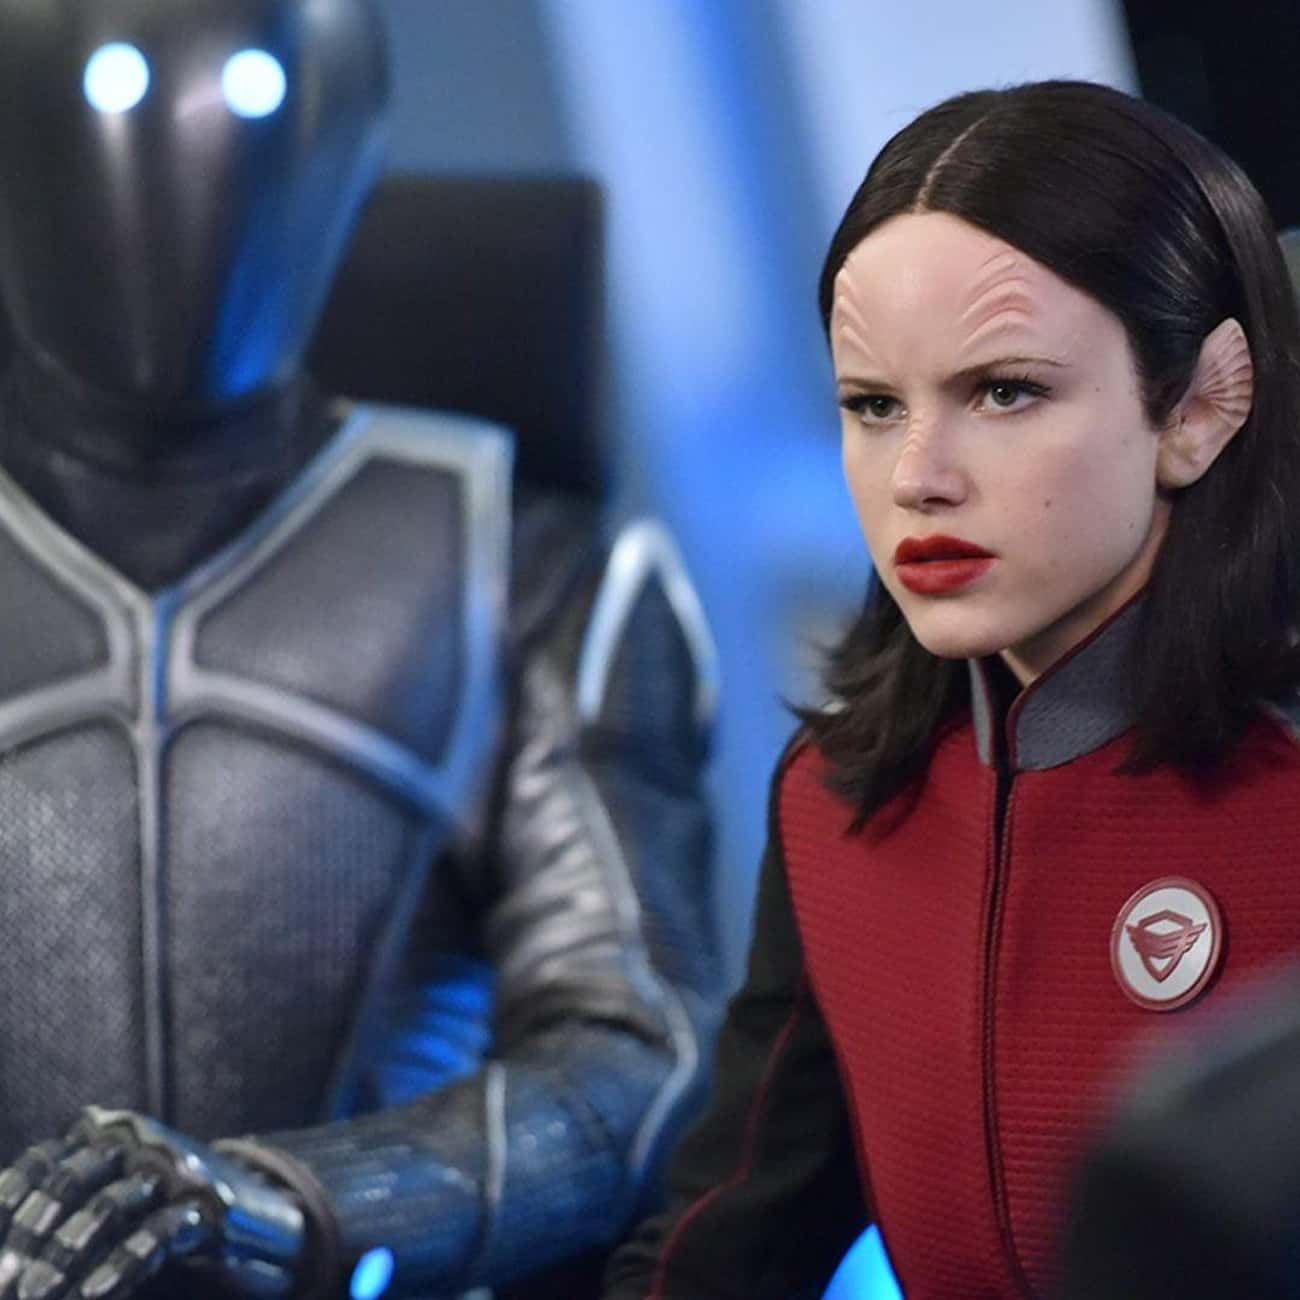 Firestorm is listed (or ranked) 2 on the list The Best Episodes of 'The Orville'